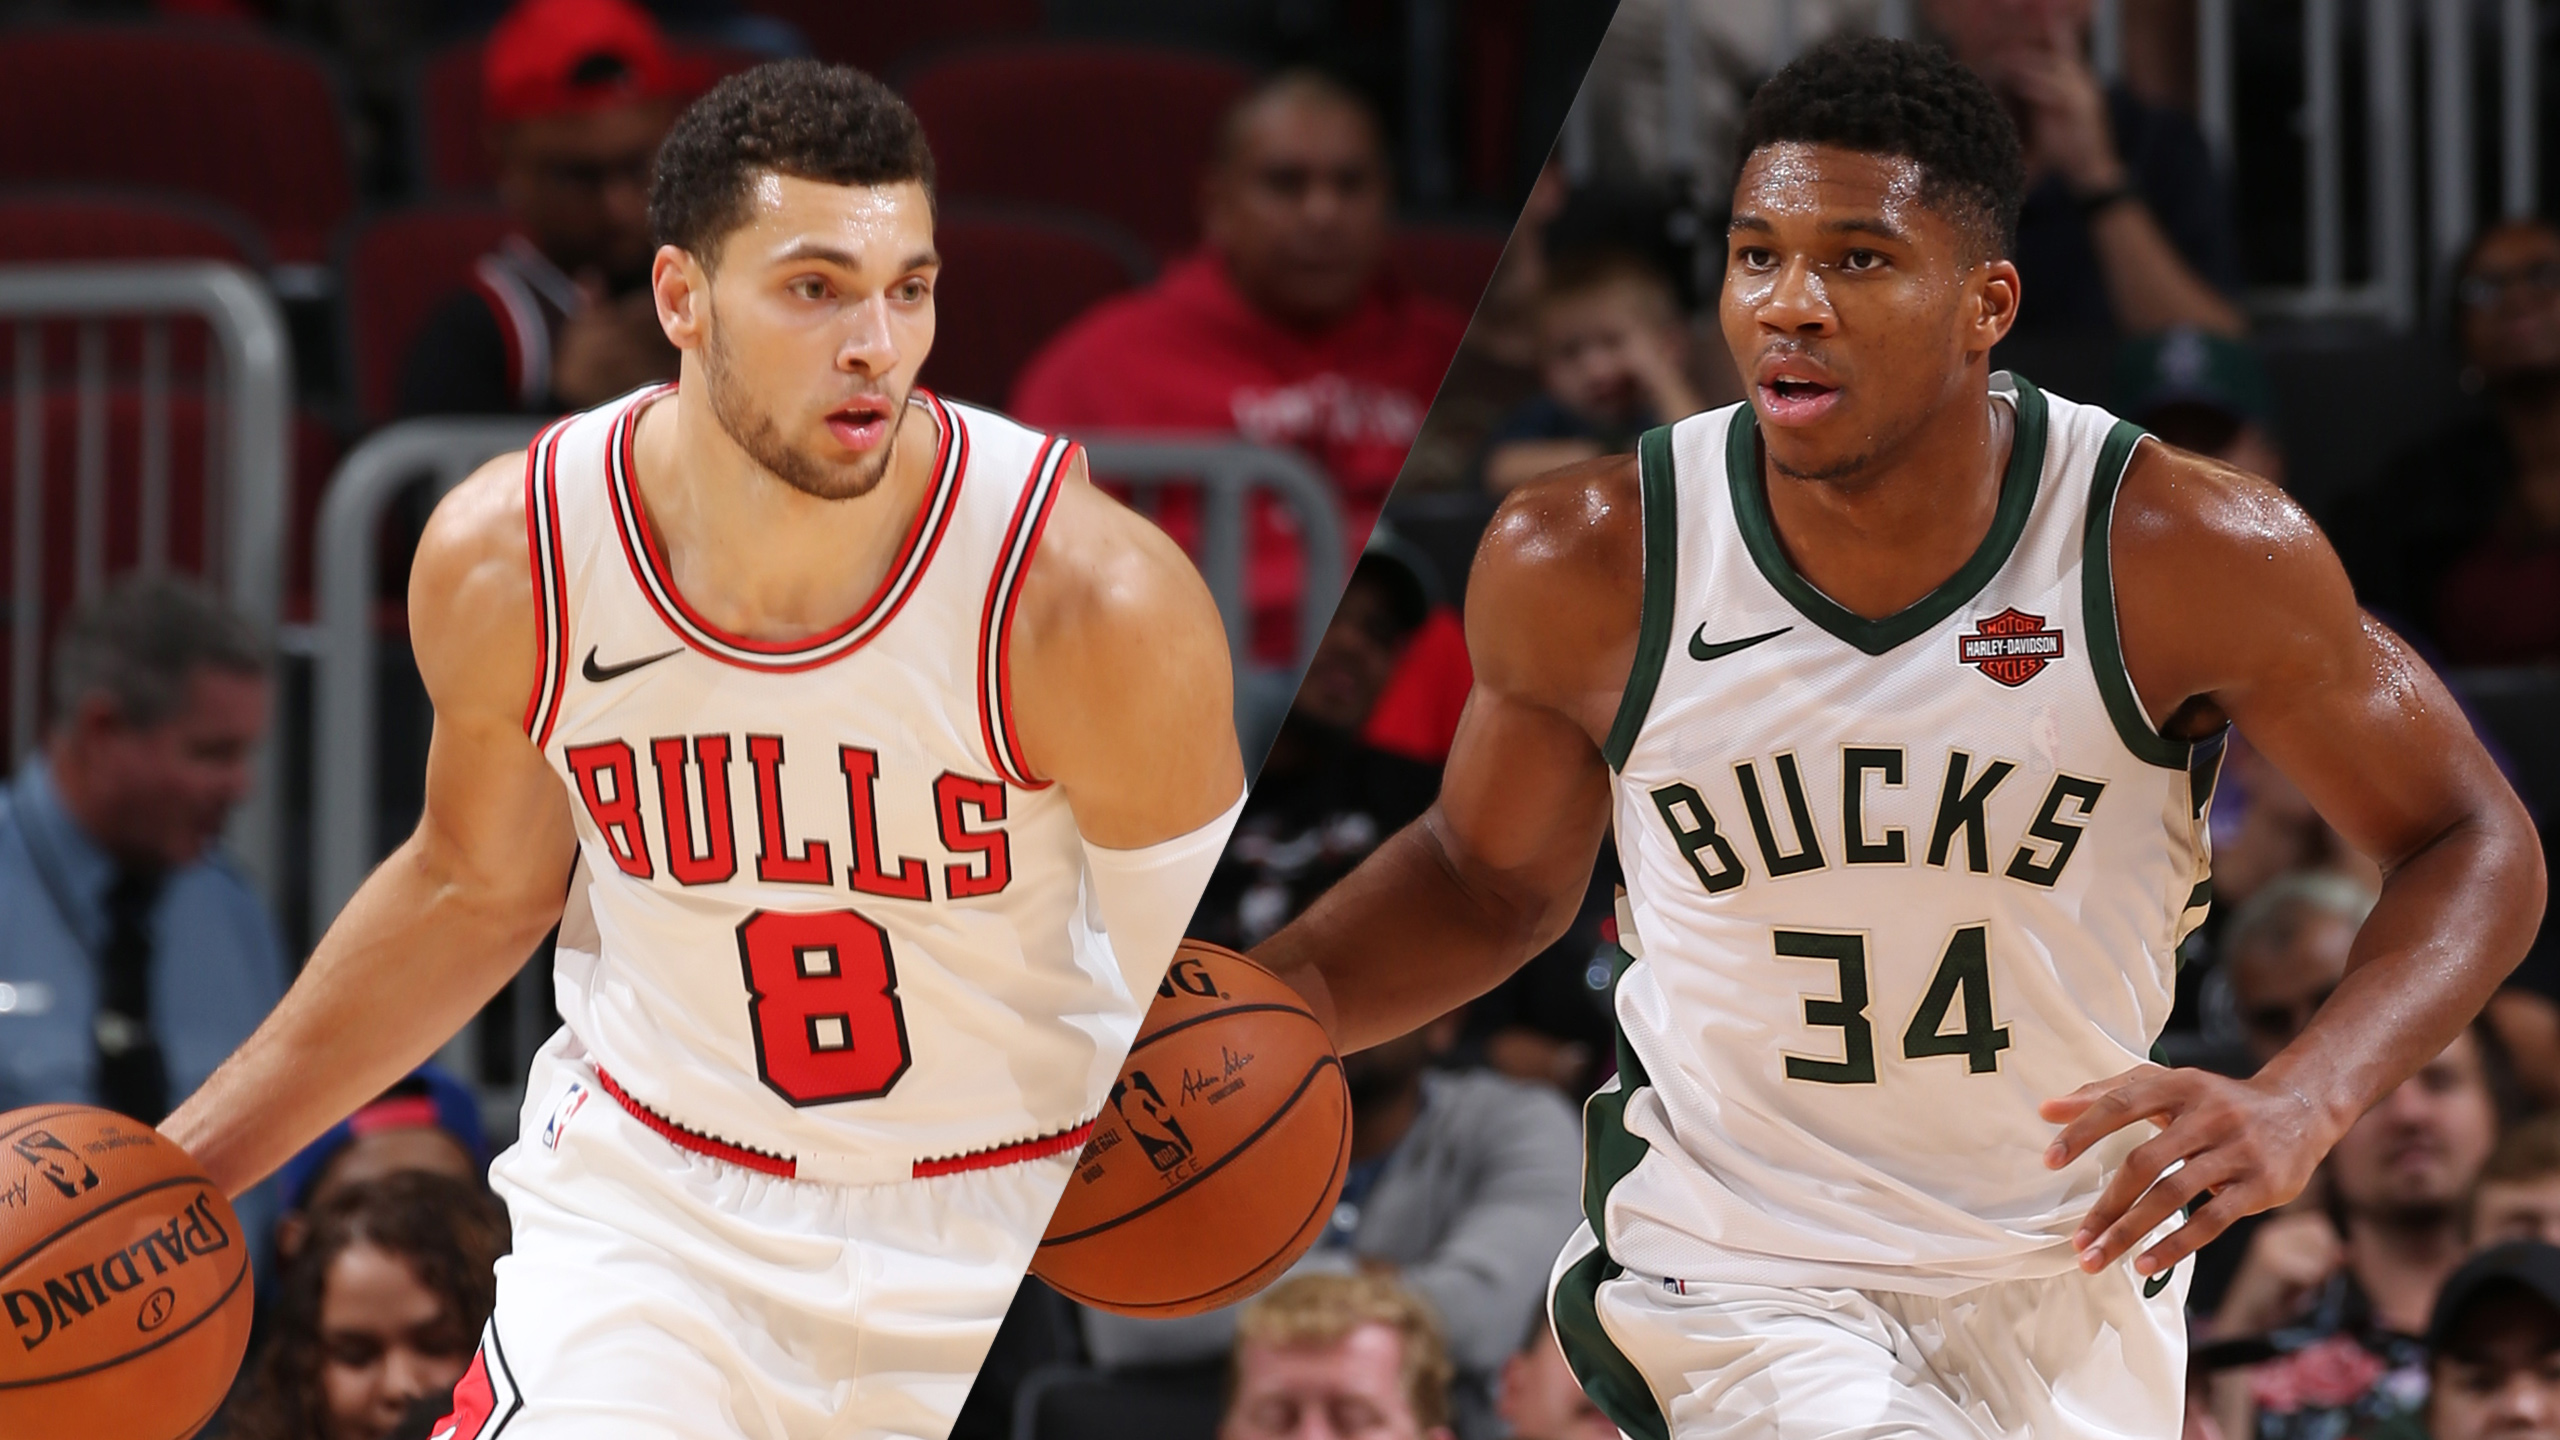 Chicago Bulls vs. Milwaukee Bucks (re-air)